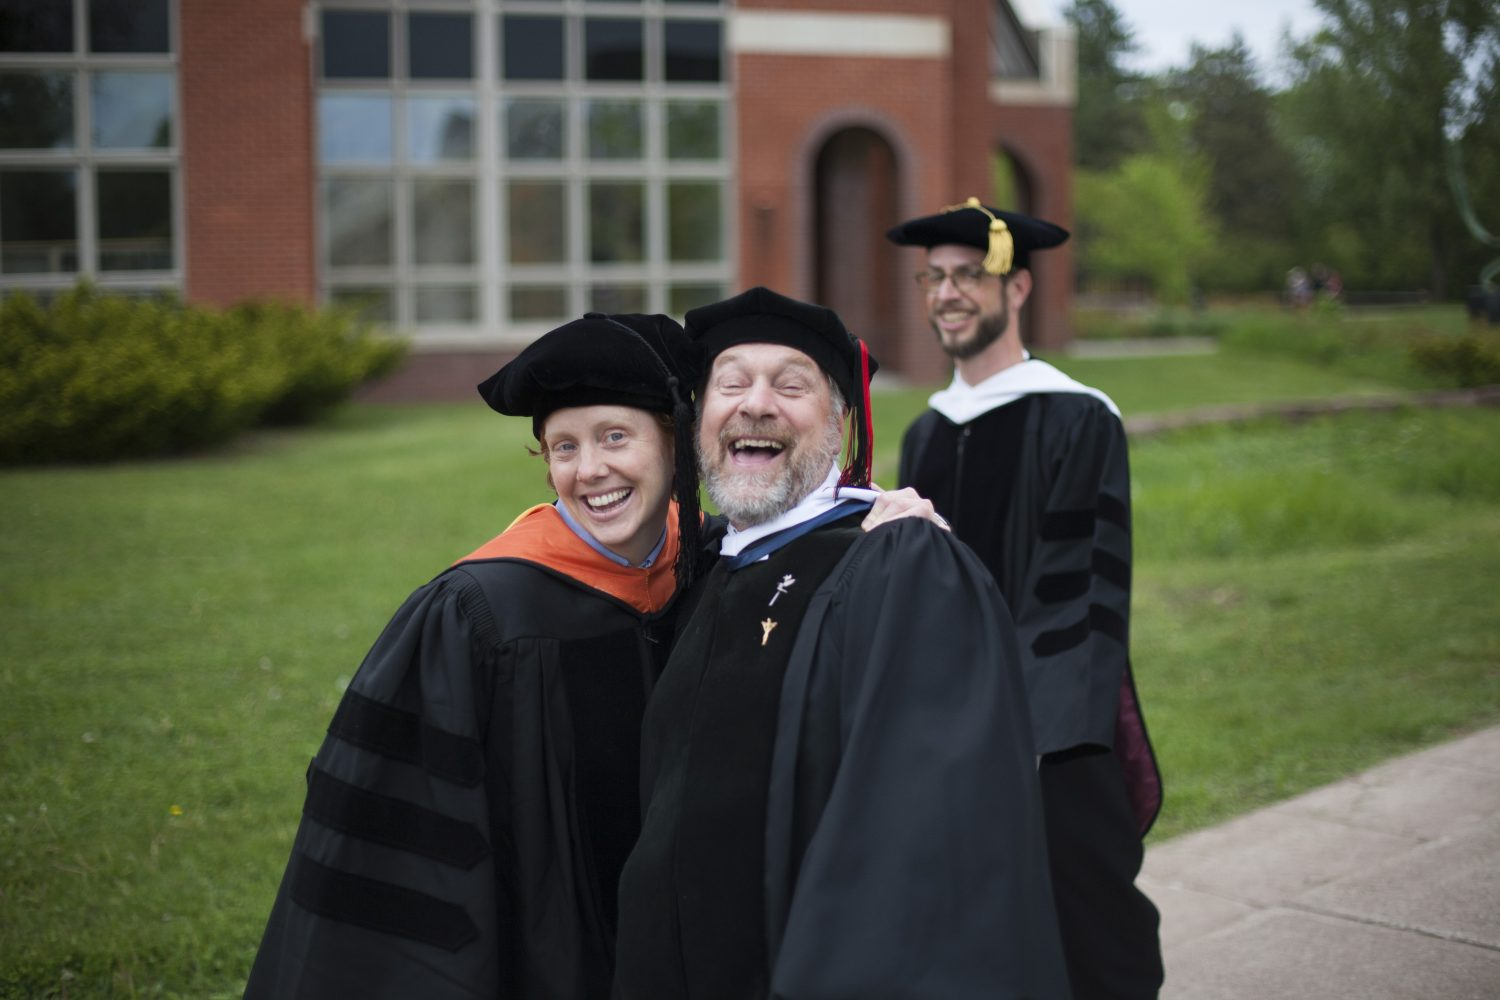 goofing around after commencement